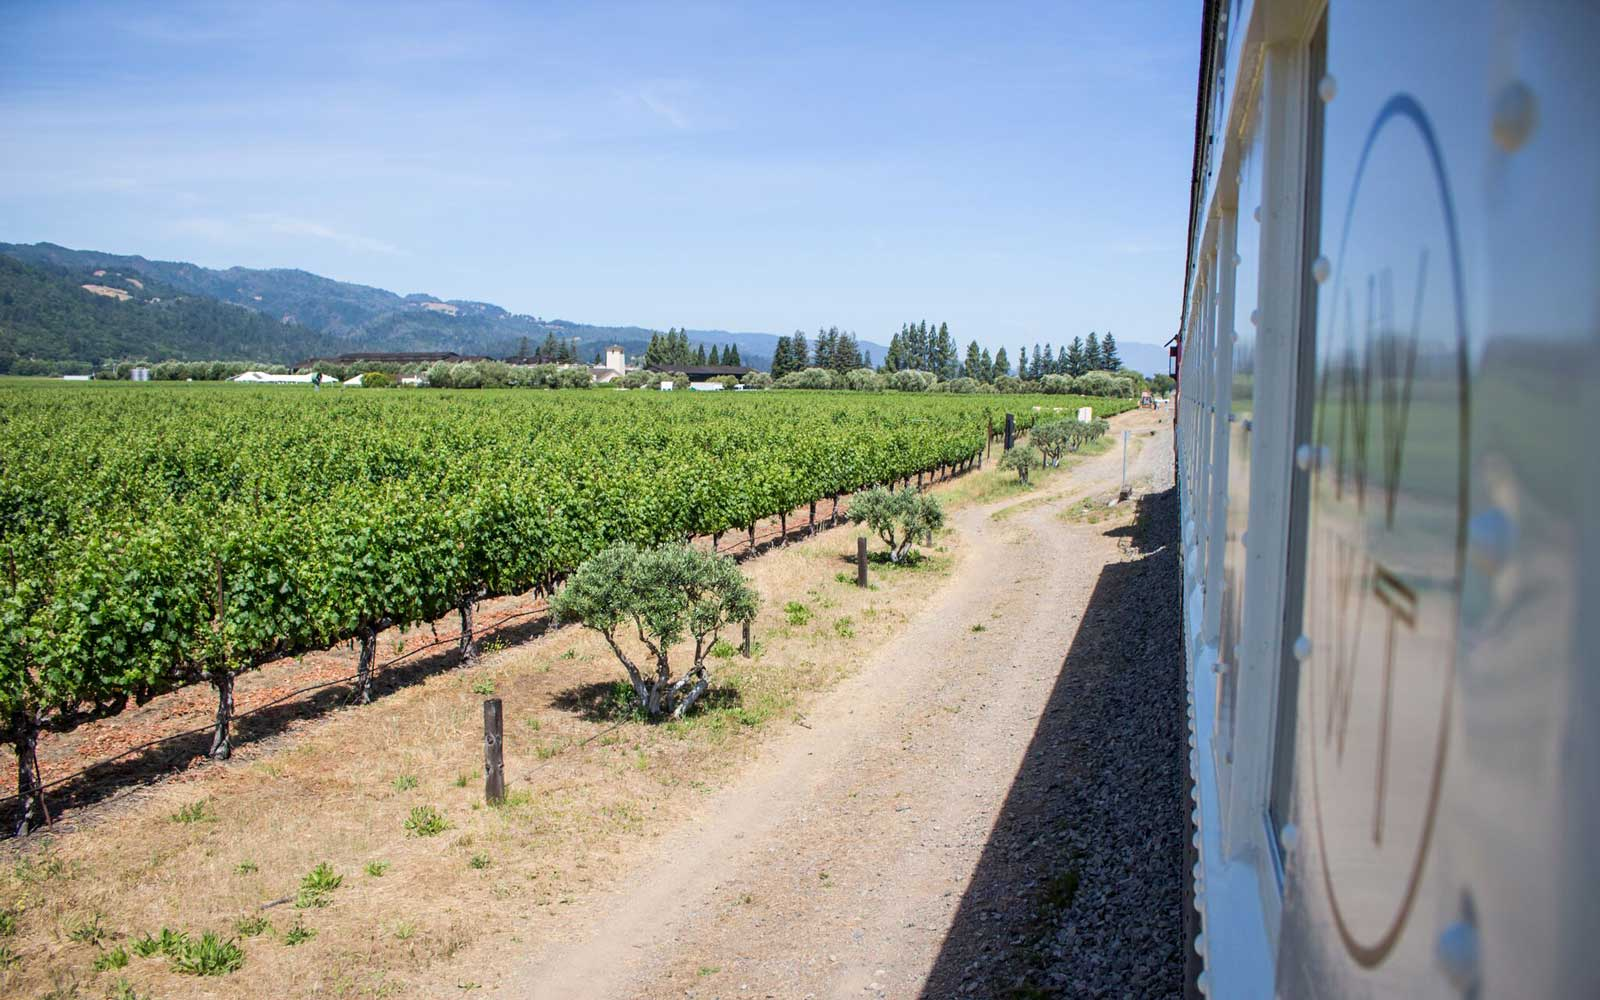 The Napa Valley Wine Train Might Be the Best Day Trip Ever